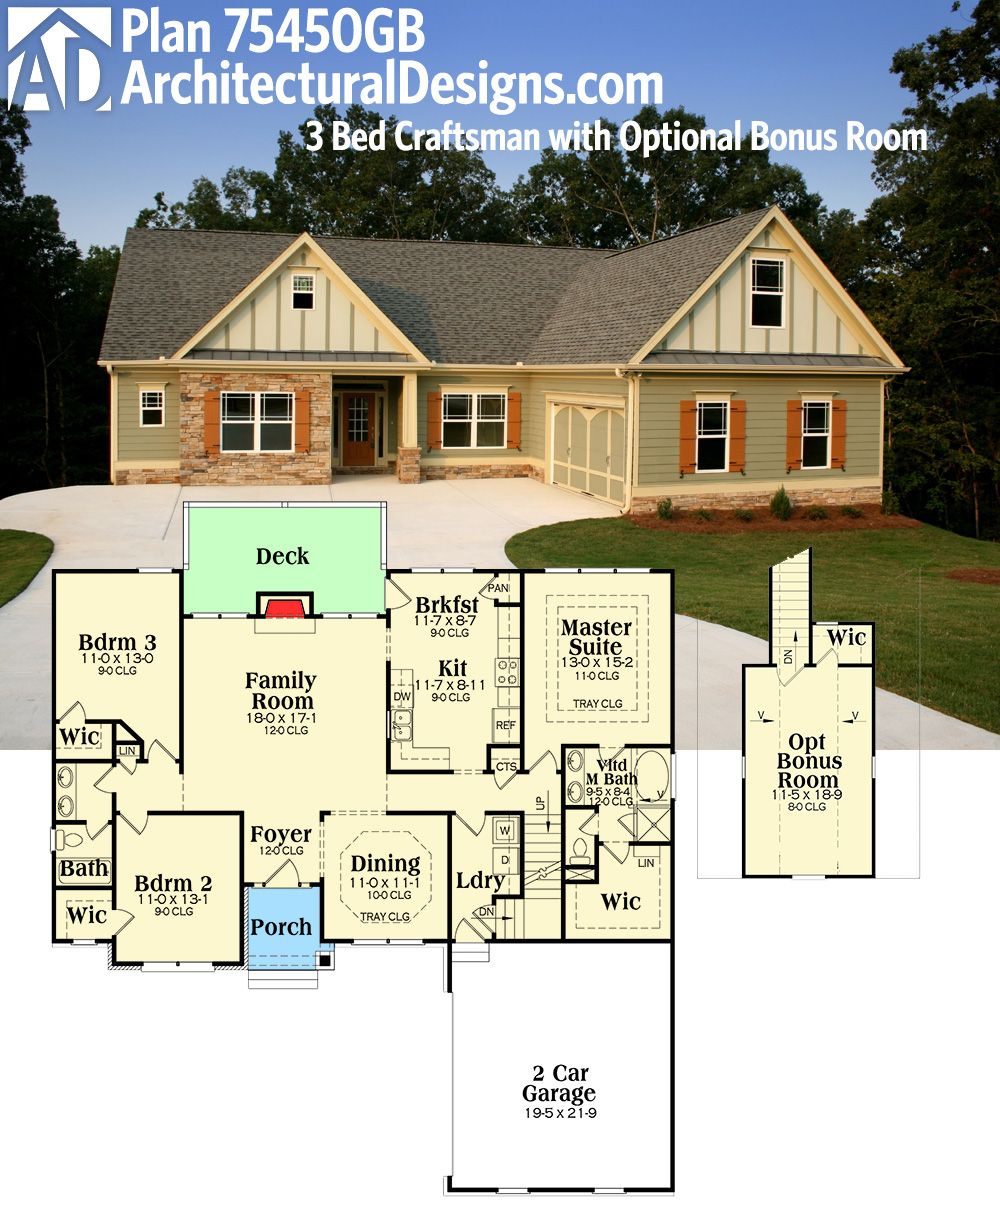 Plan 75450gb 3 bed craftsman with optional bonus room for Double garage with room above plans